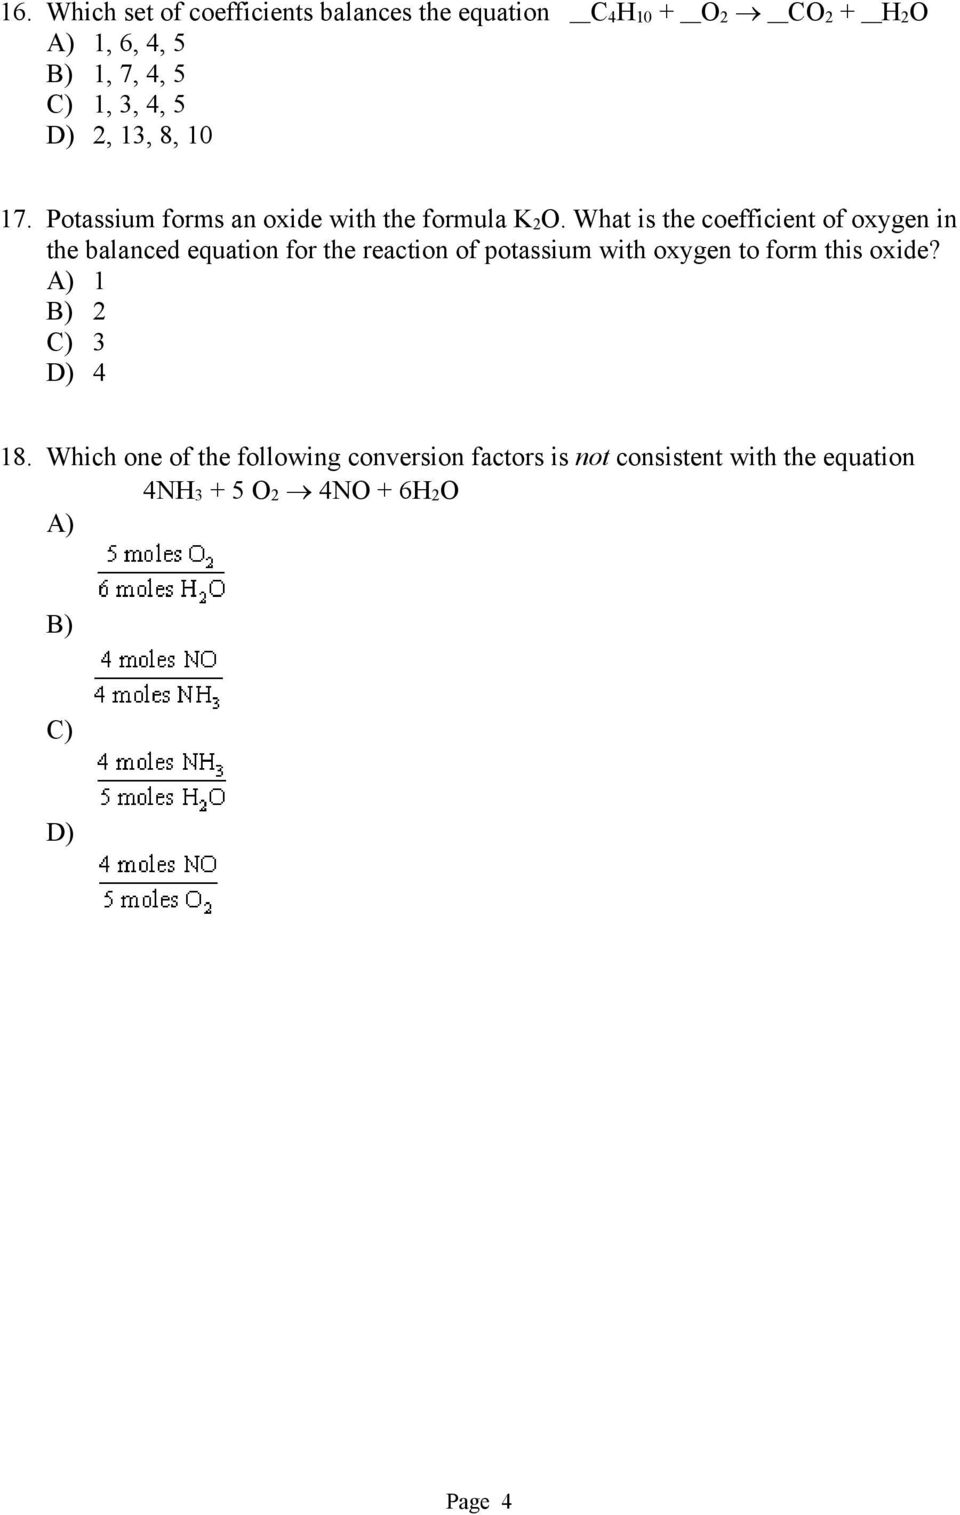 What is the coefficient of oxygen in the balanced equation for the reaction of potassium with oxygen to form